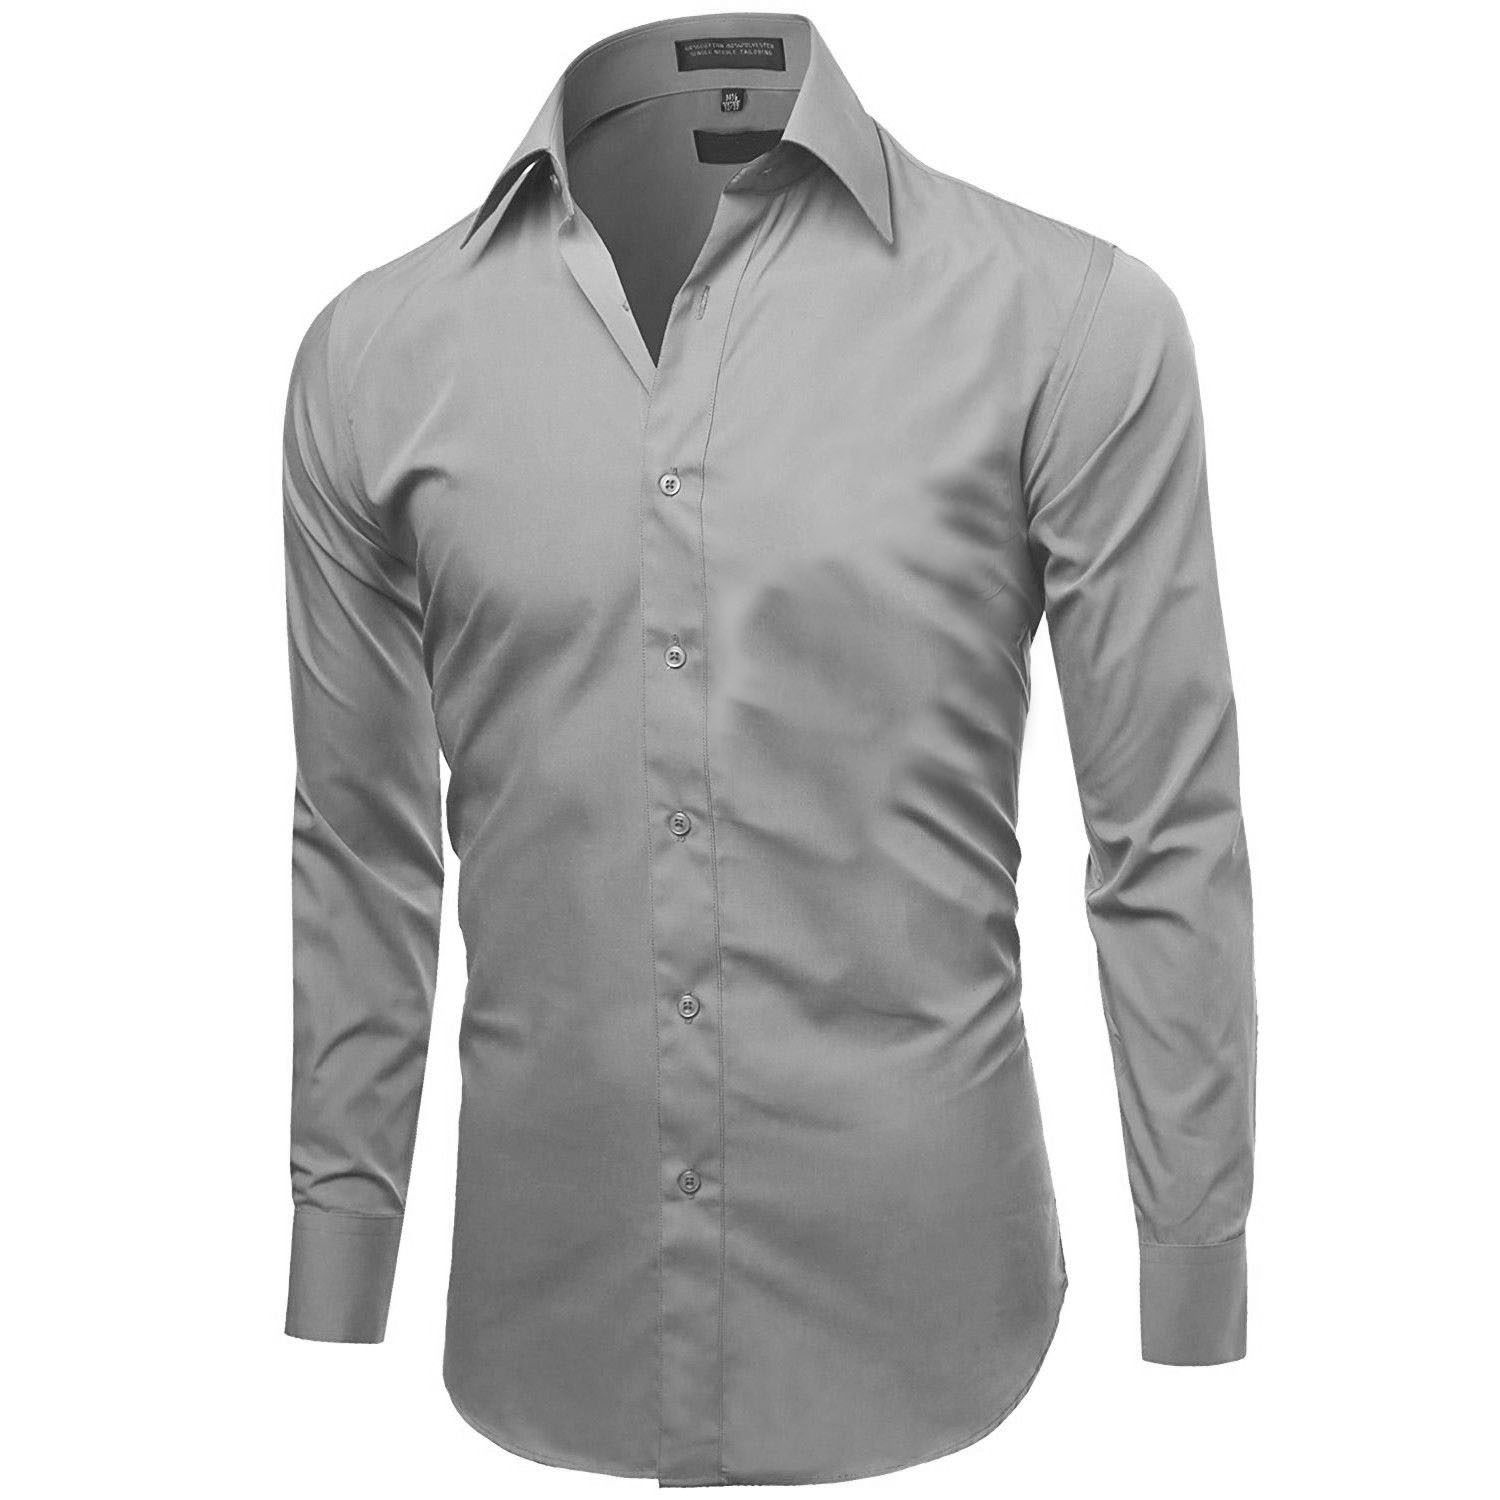 Omega-Italy-Men-039-s-Premium-Slim-Fit-Button-Up-Long-Sleeve-Solid-Color-Dress-Shirt thumbnail 43